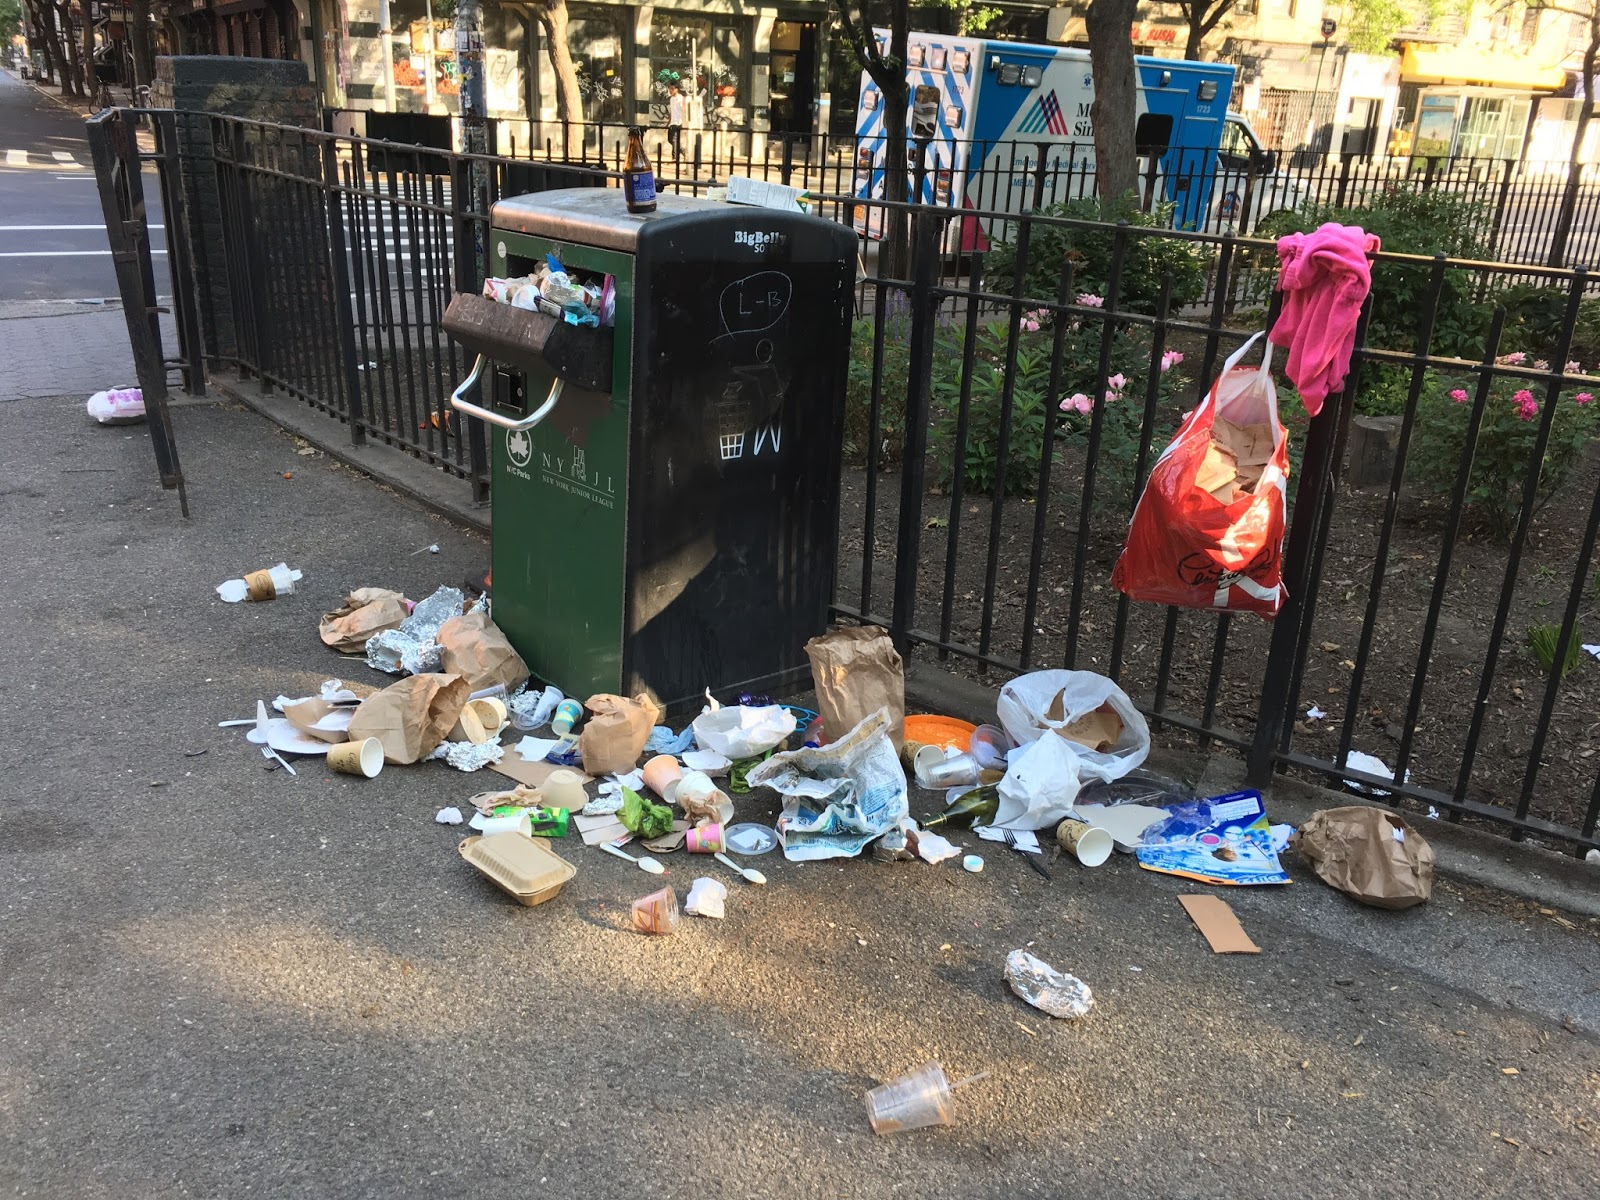 190 arrested for dumping garbage in public places